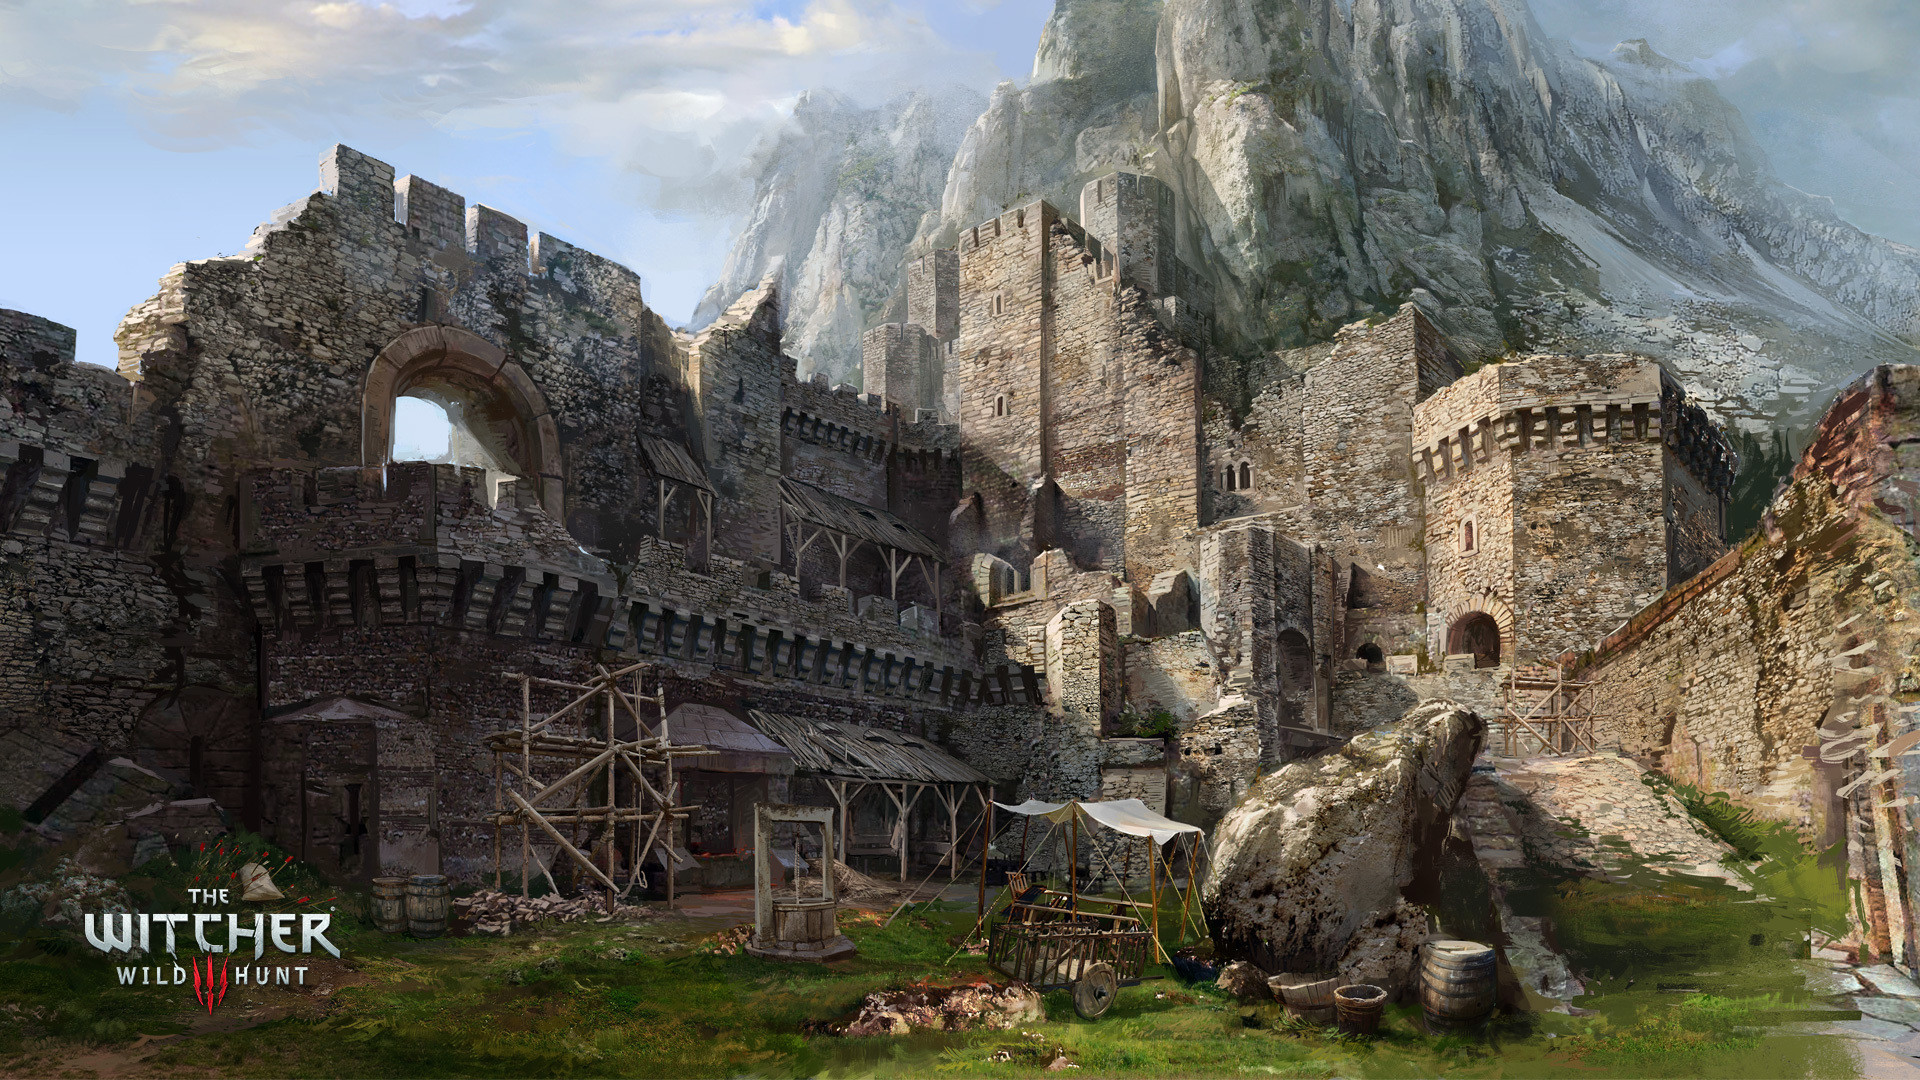 Wallpaper the witcher 3 wild hunt, caer morhen, well, mountain,  fortress